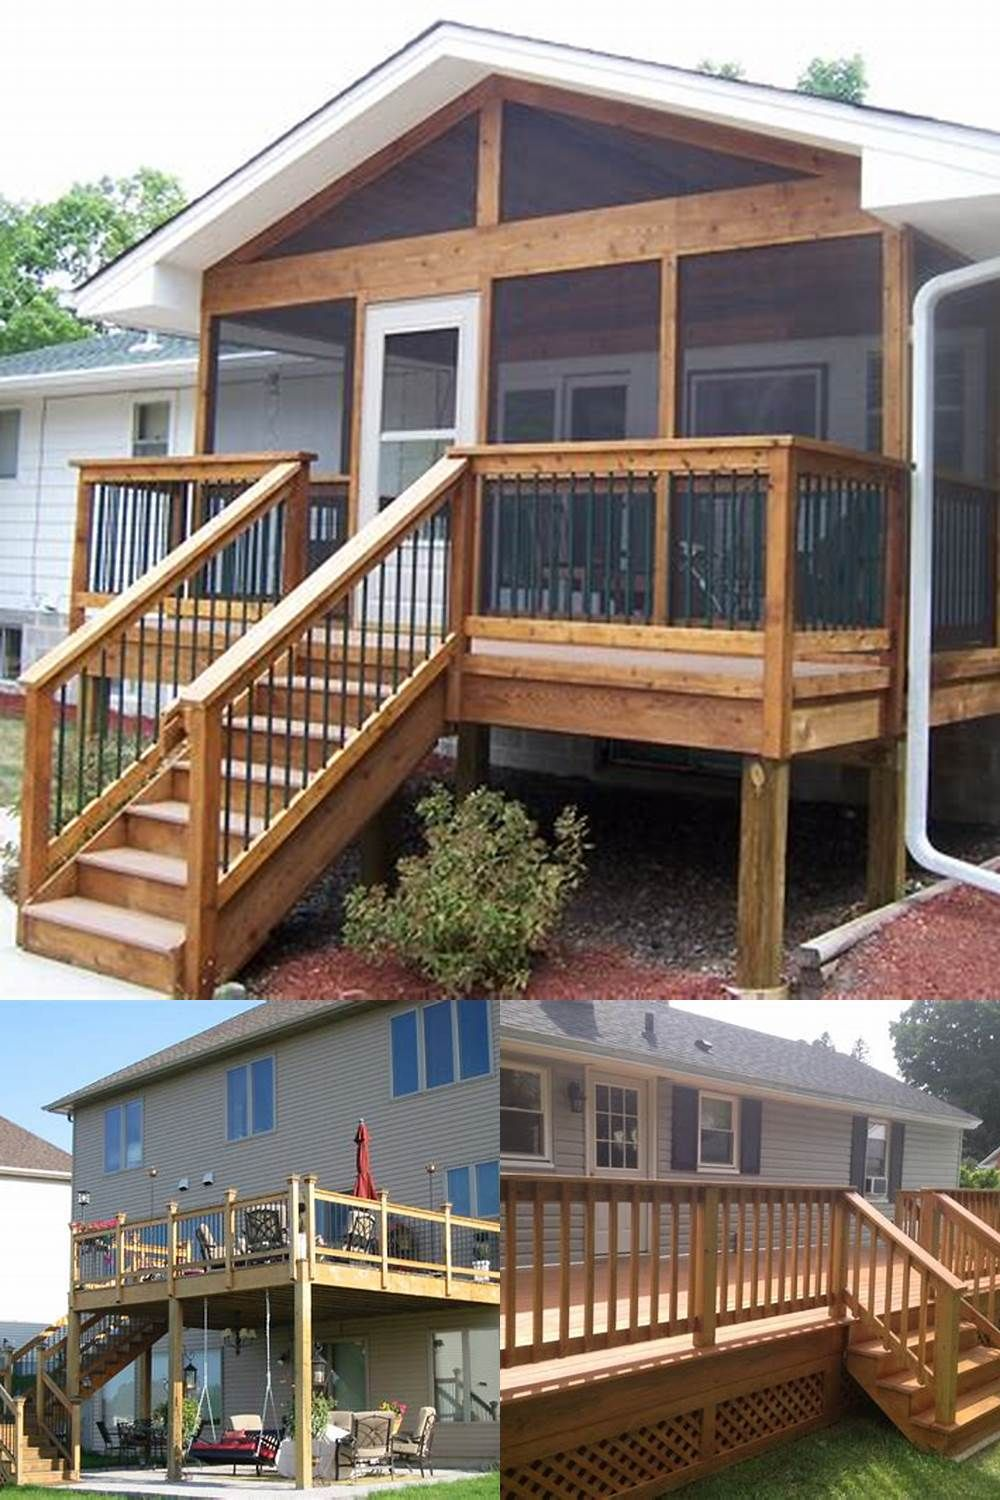 Deck Plan These Free Deck Plans Will Certainly Assist You Develop The Deck Of Your Desires With A Bit Of Know How And Some Hard Wo Deck Plans Deck Cool Deck